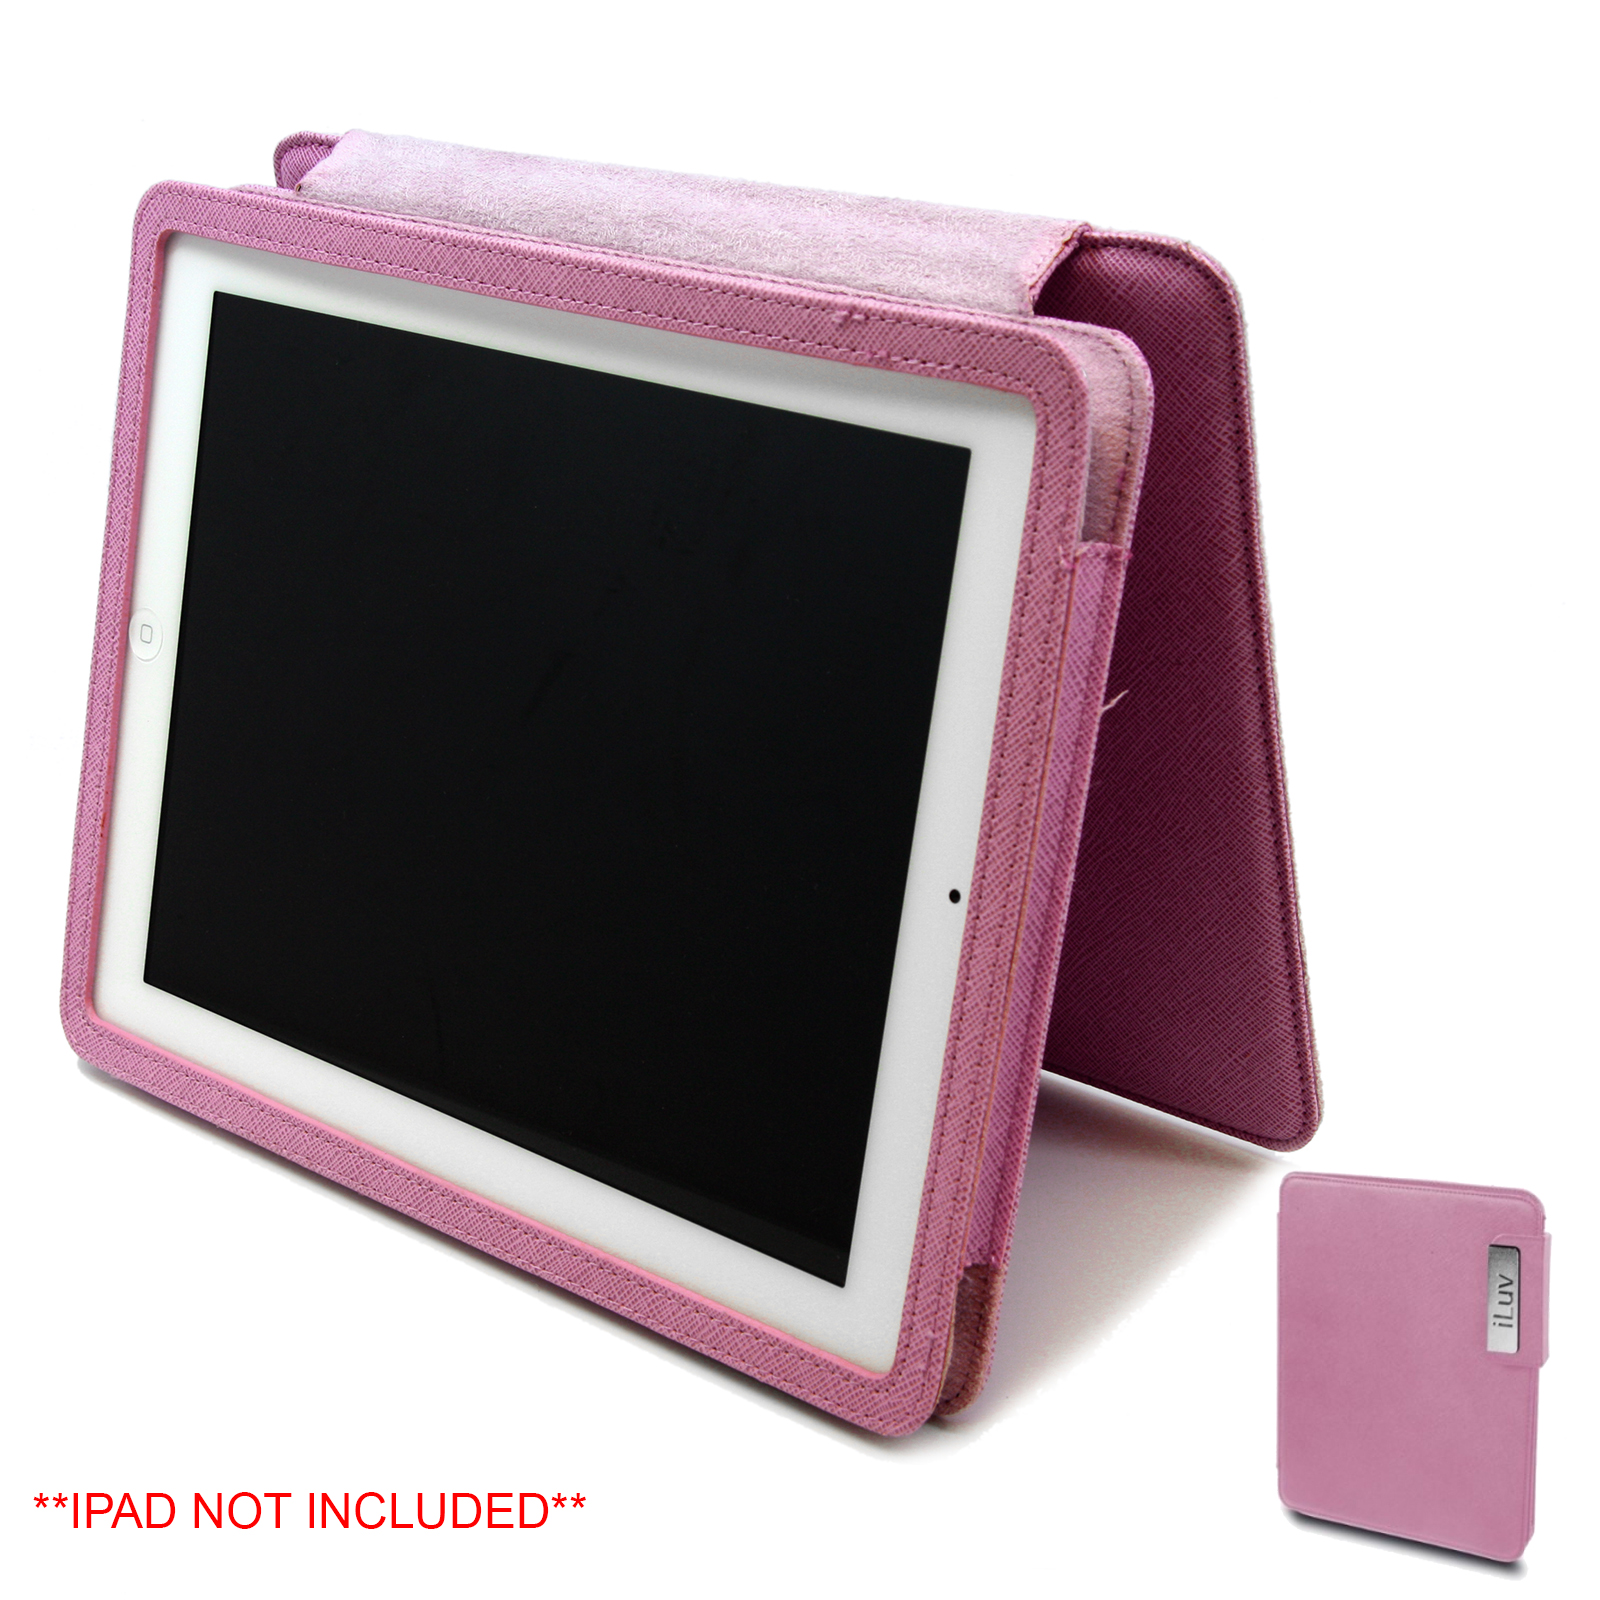 iLuv IOS Leather PC Case, Pink